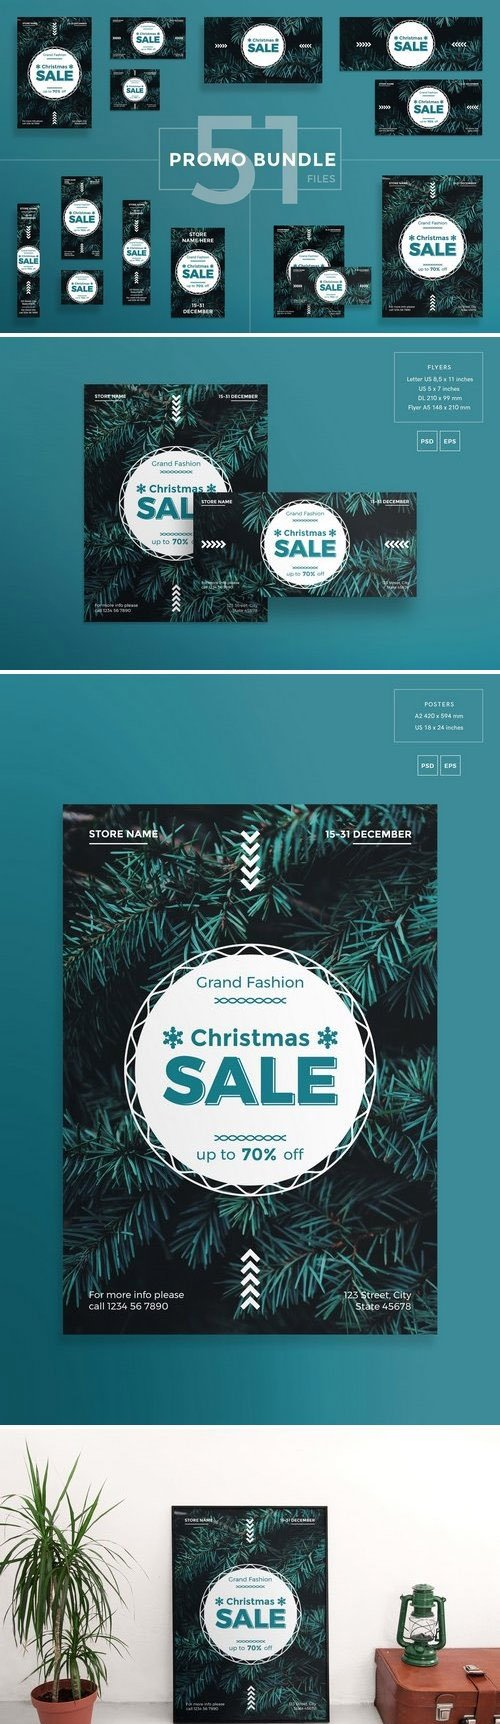 CM - Promo Bundle | Christmas Sale 2078206